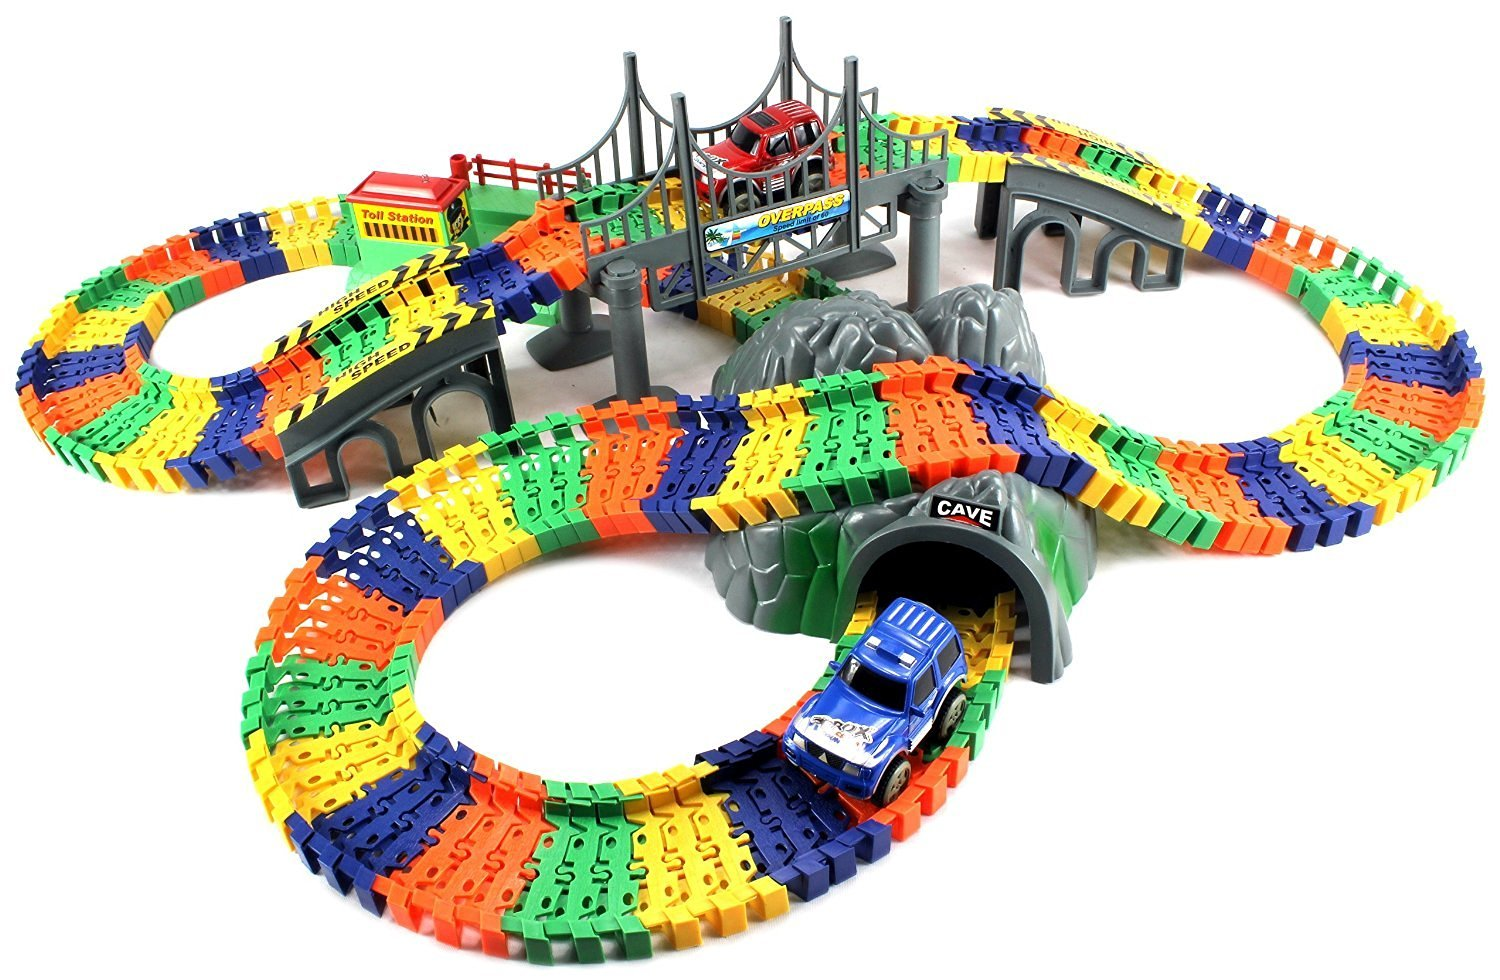 Velocity Toys Track Car Pleasant Journey Cave Bridge Toll Station Deluxe 234 Piece Flexible Playset with 2 Battery Operated Toy Accessories, En